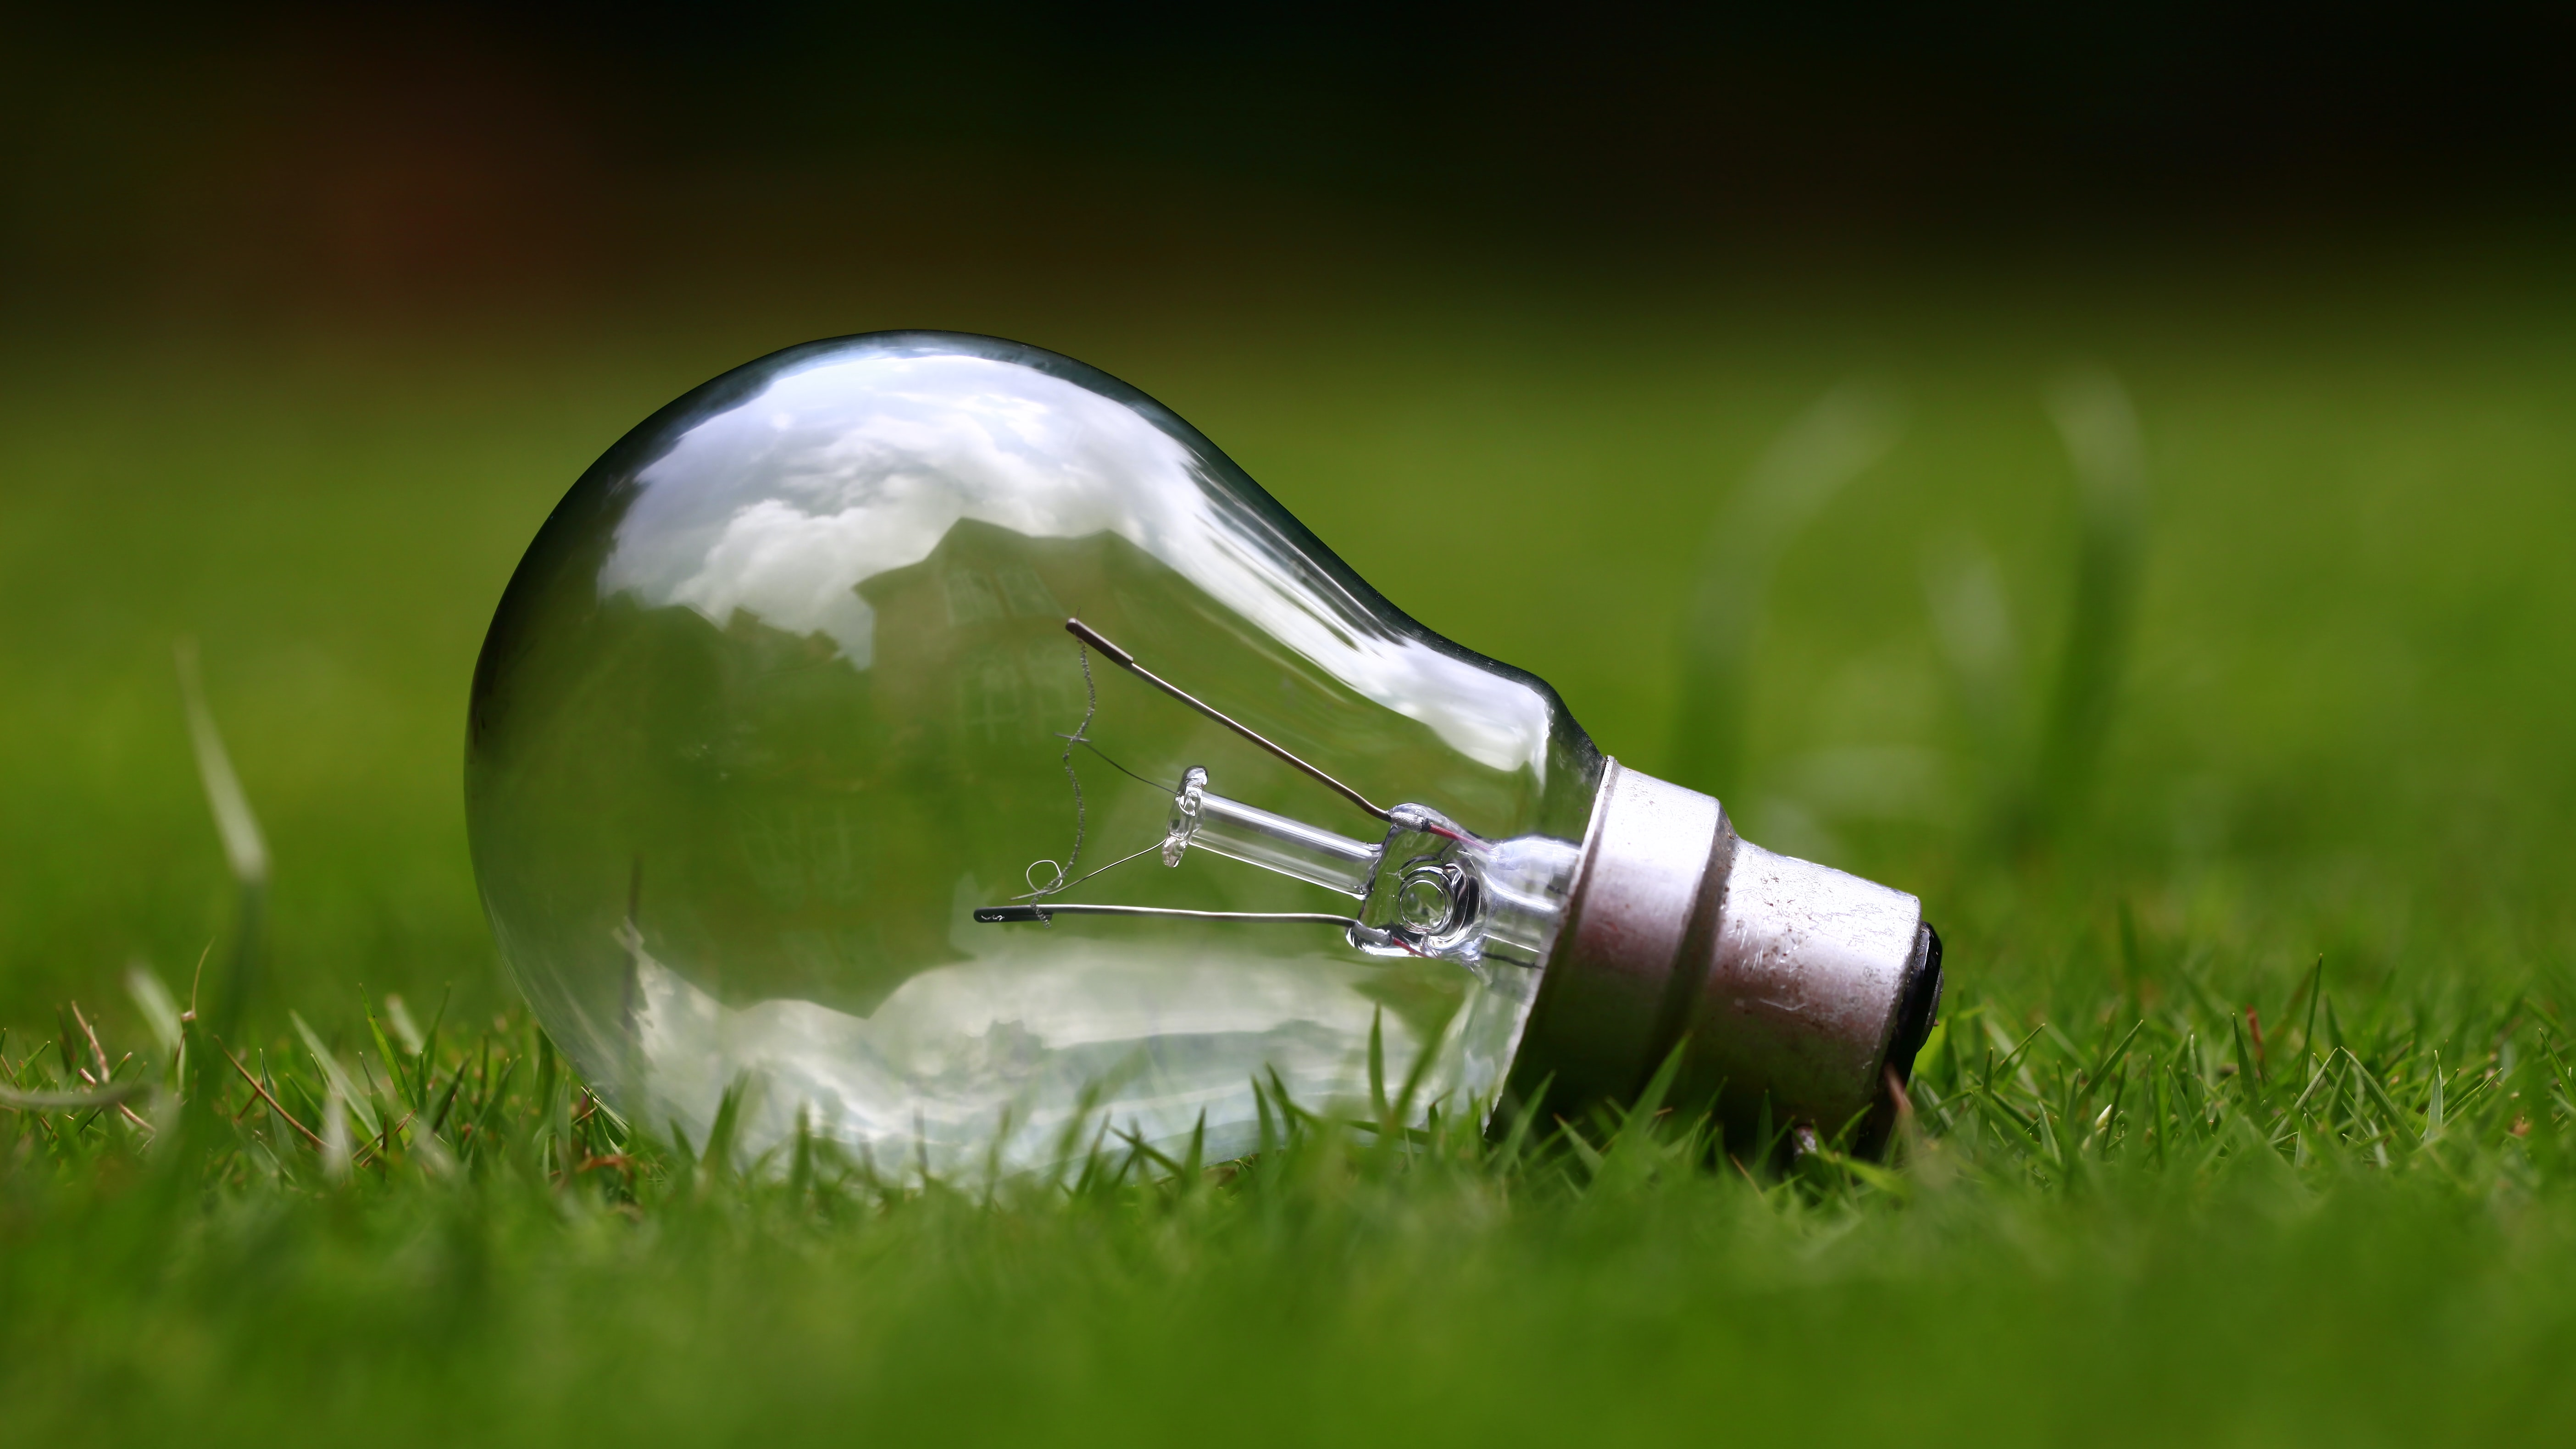 Close-up of a light bulb lying on green grass